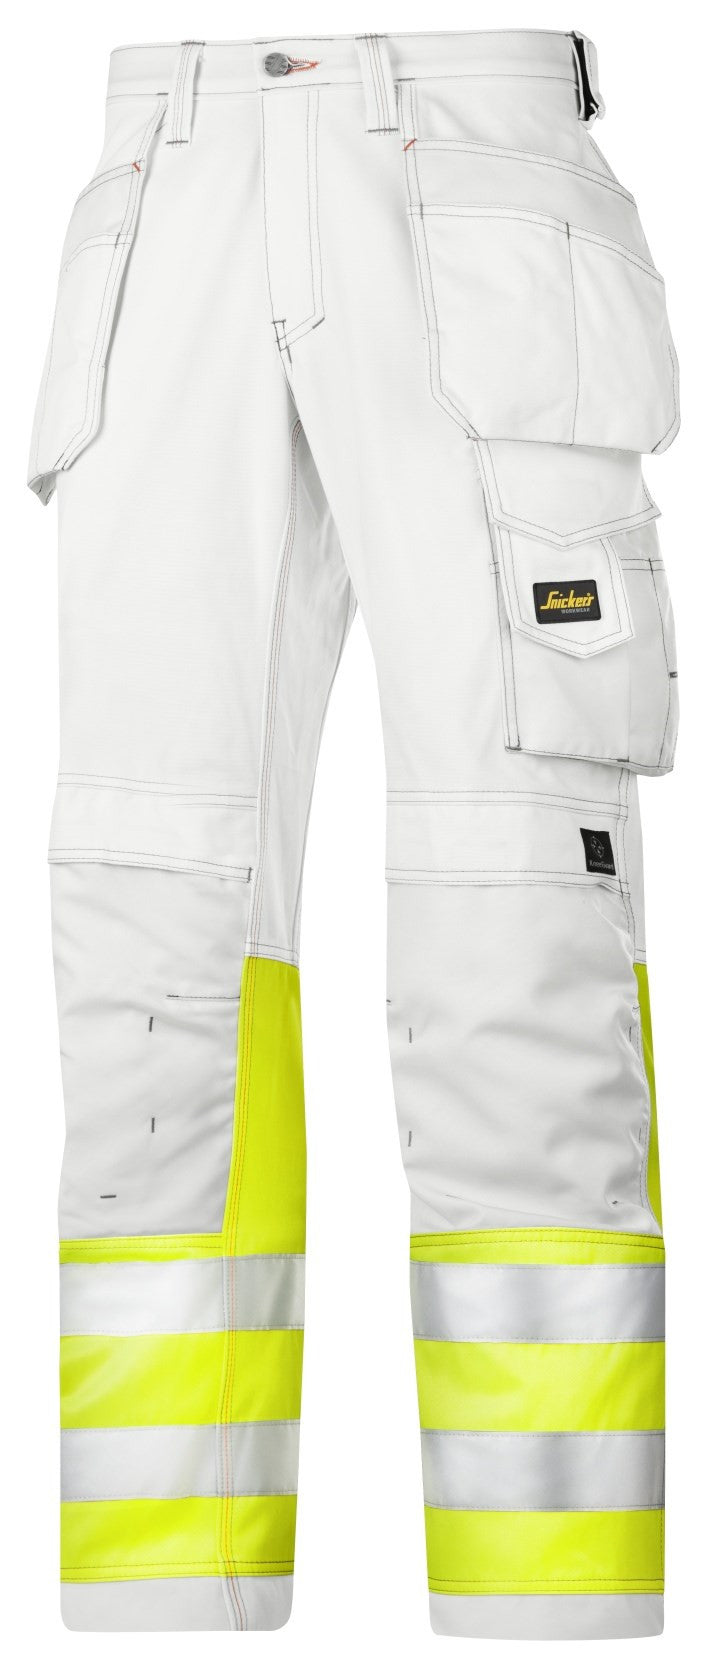 3234-high-vis-painters-hp-trousers-class-1 - Snickers Werkkledij